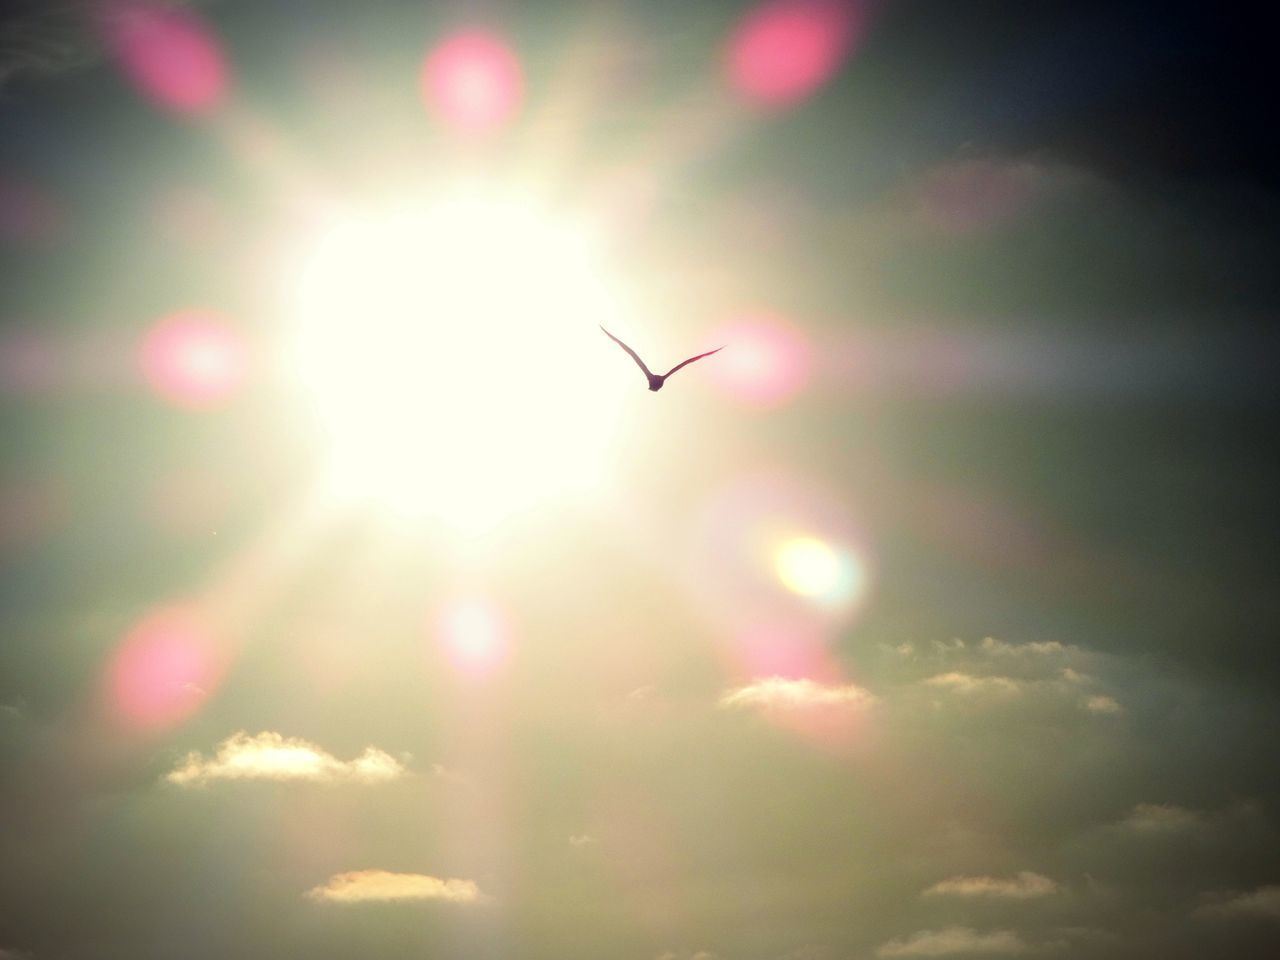 sky, sunlight, sun, lens flare, animal themes, beauty in nature, animal, vertebrate, nature, animals in the wild, one animal, no people, animal wildlife, bird, low angle view, sunbeam, day, cloud - sky, outdoors, flying, bright, brightly lit